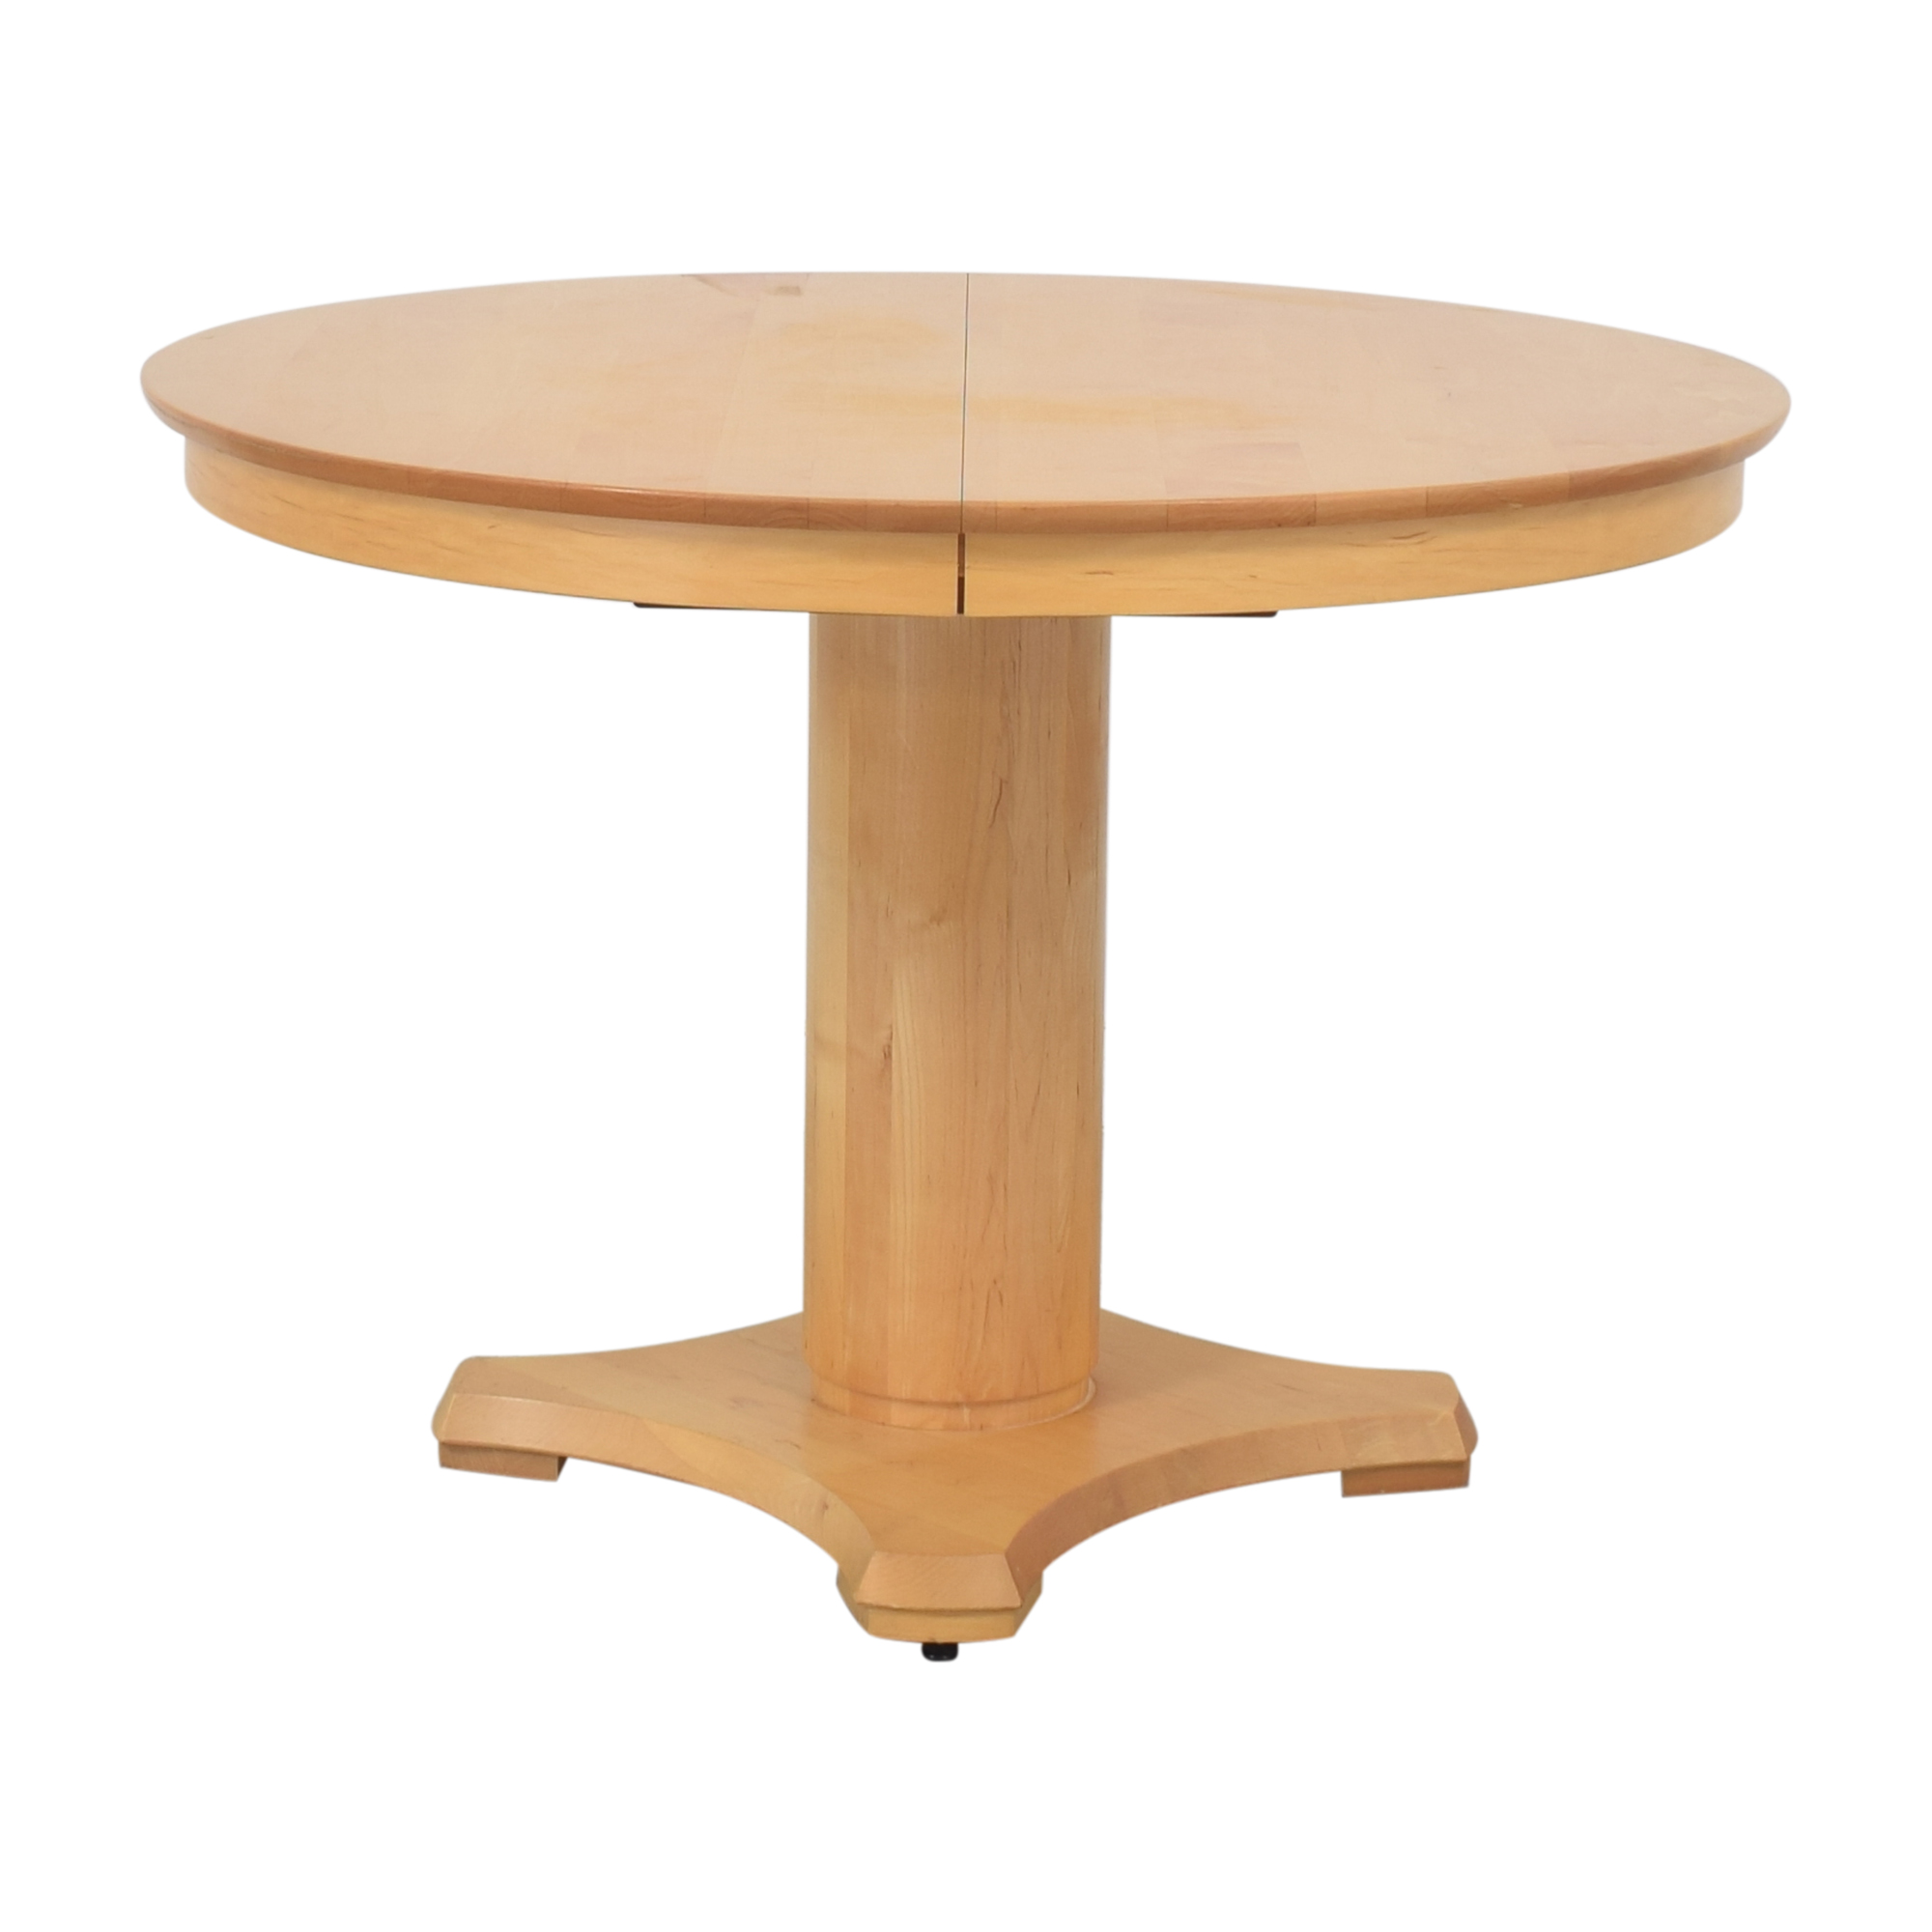 Crate & Barrel Dining Round Dinner Table / Dinner Tables